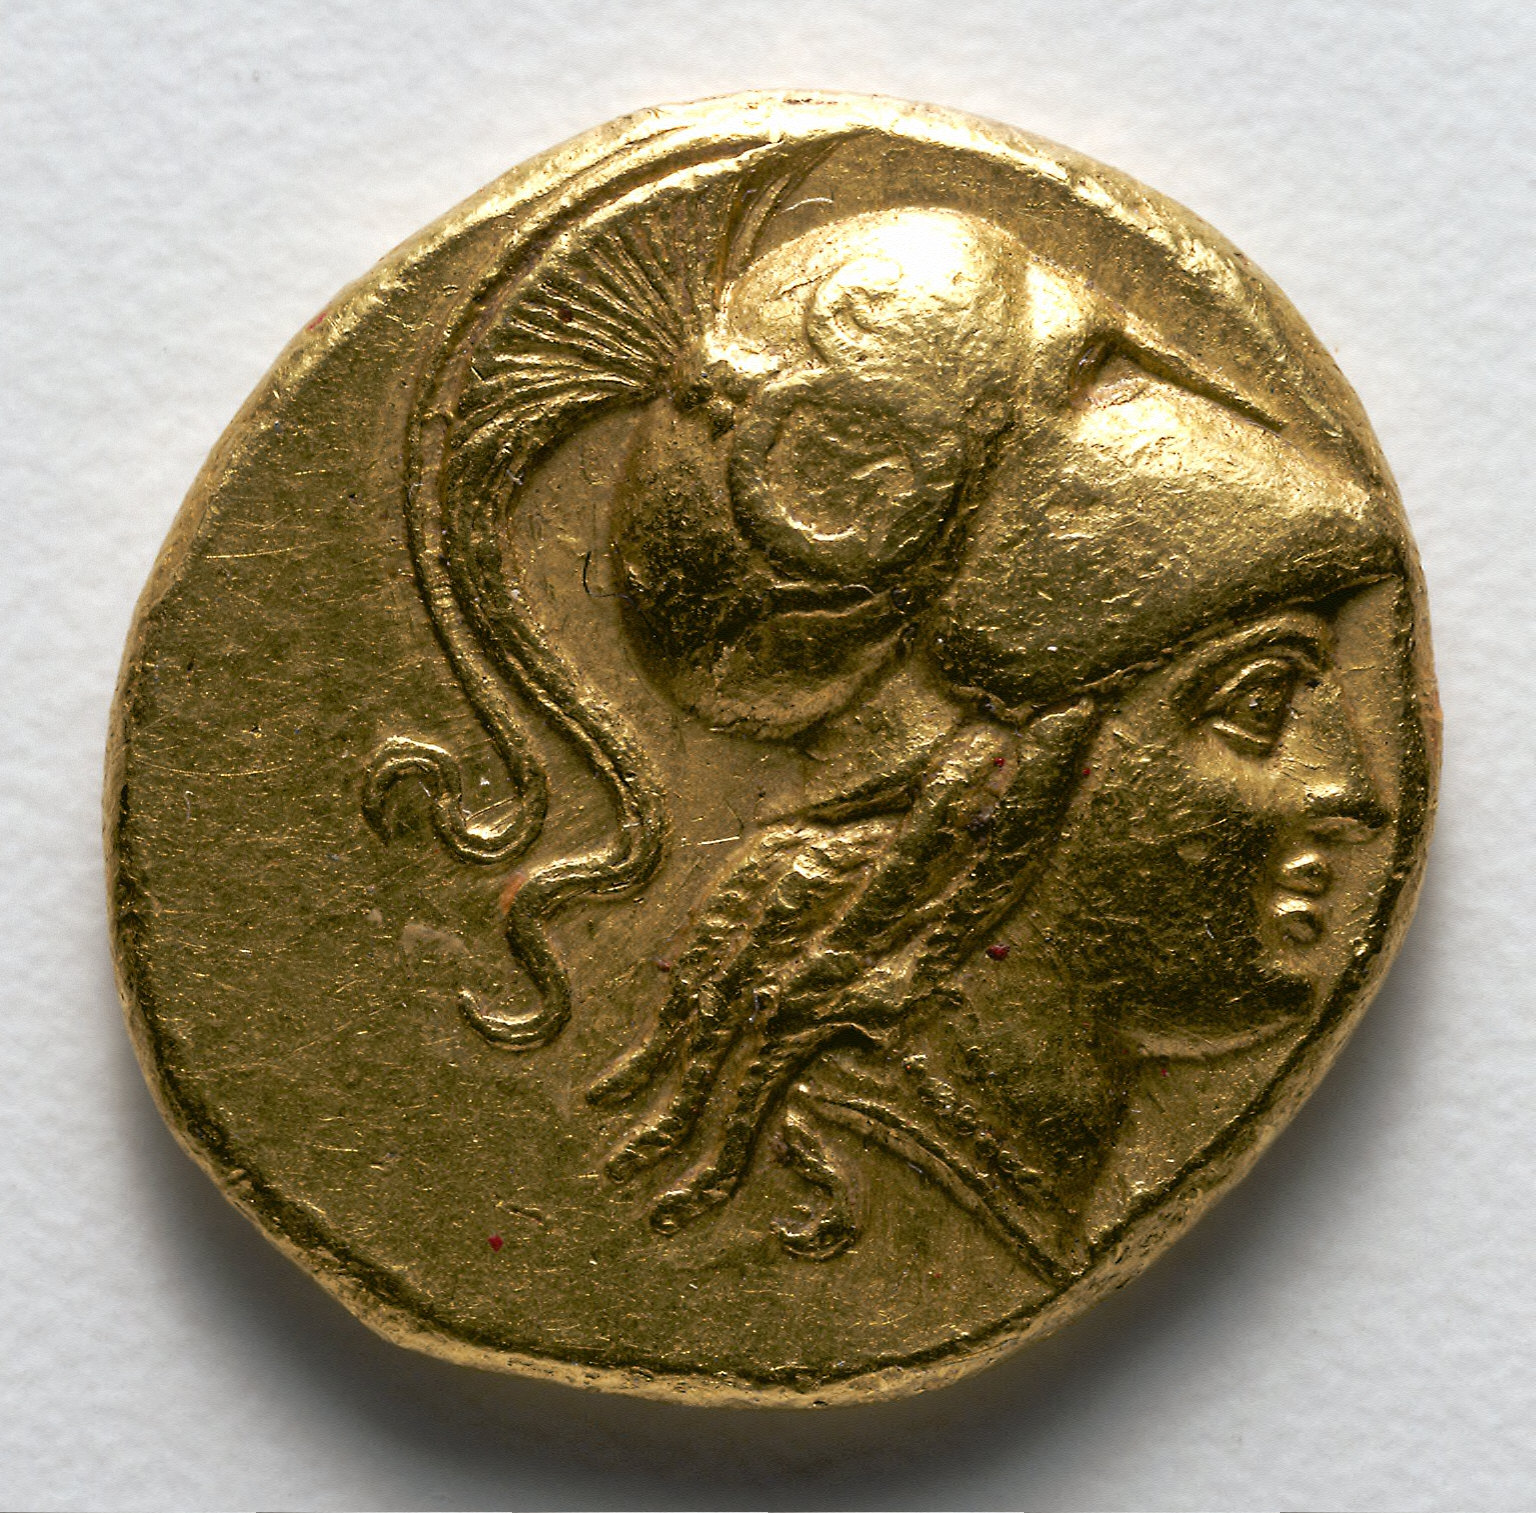 Stater: Head of Athena (obverse)